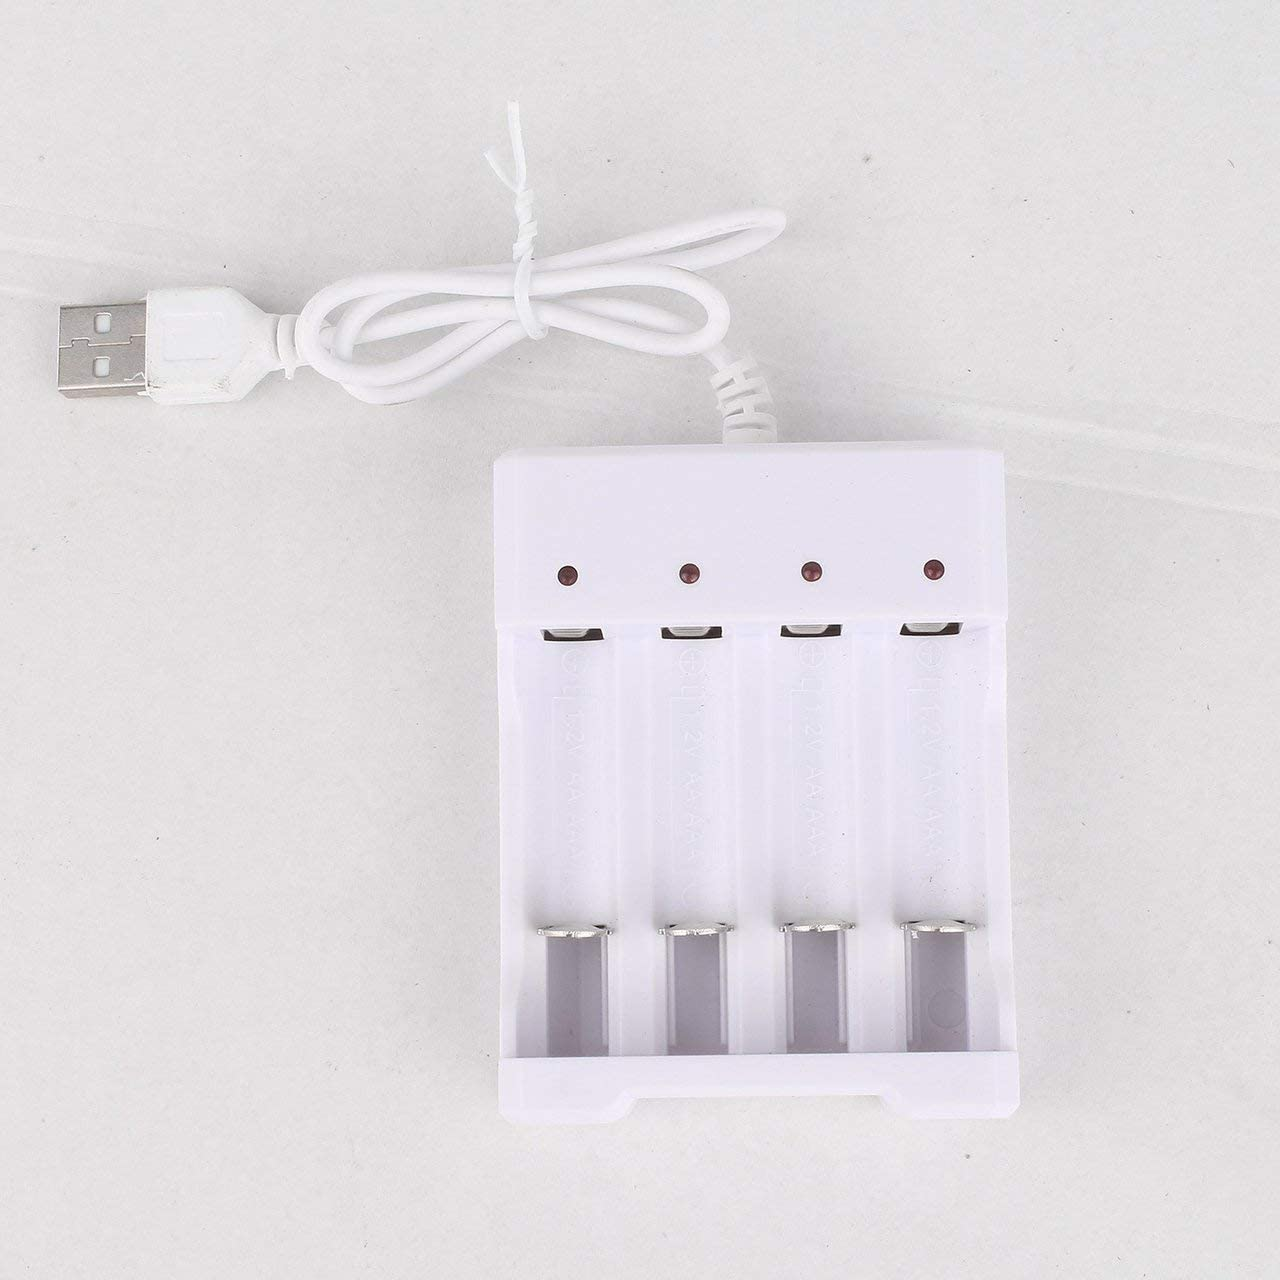 white Jasnyfall Battery Charger For AA AAA Batteries 4 Ports Battery Charger With USB Plug Universal Power Tool Accessories